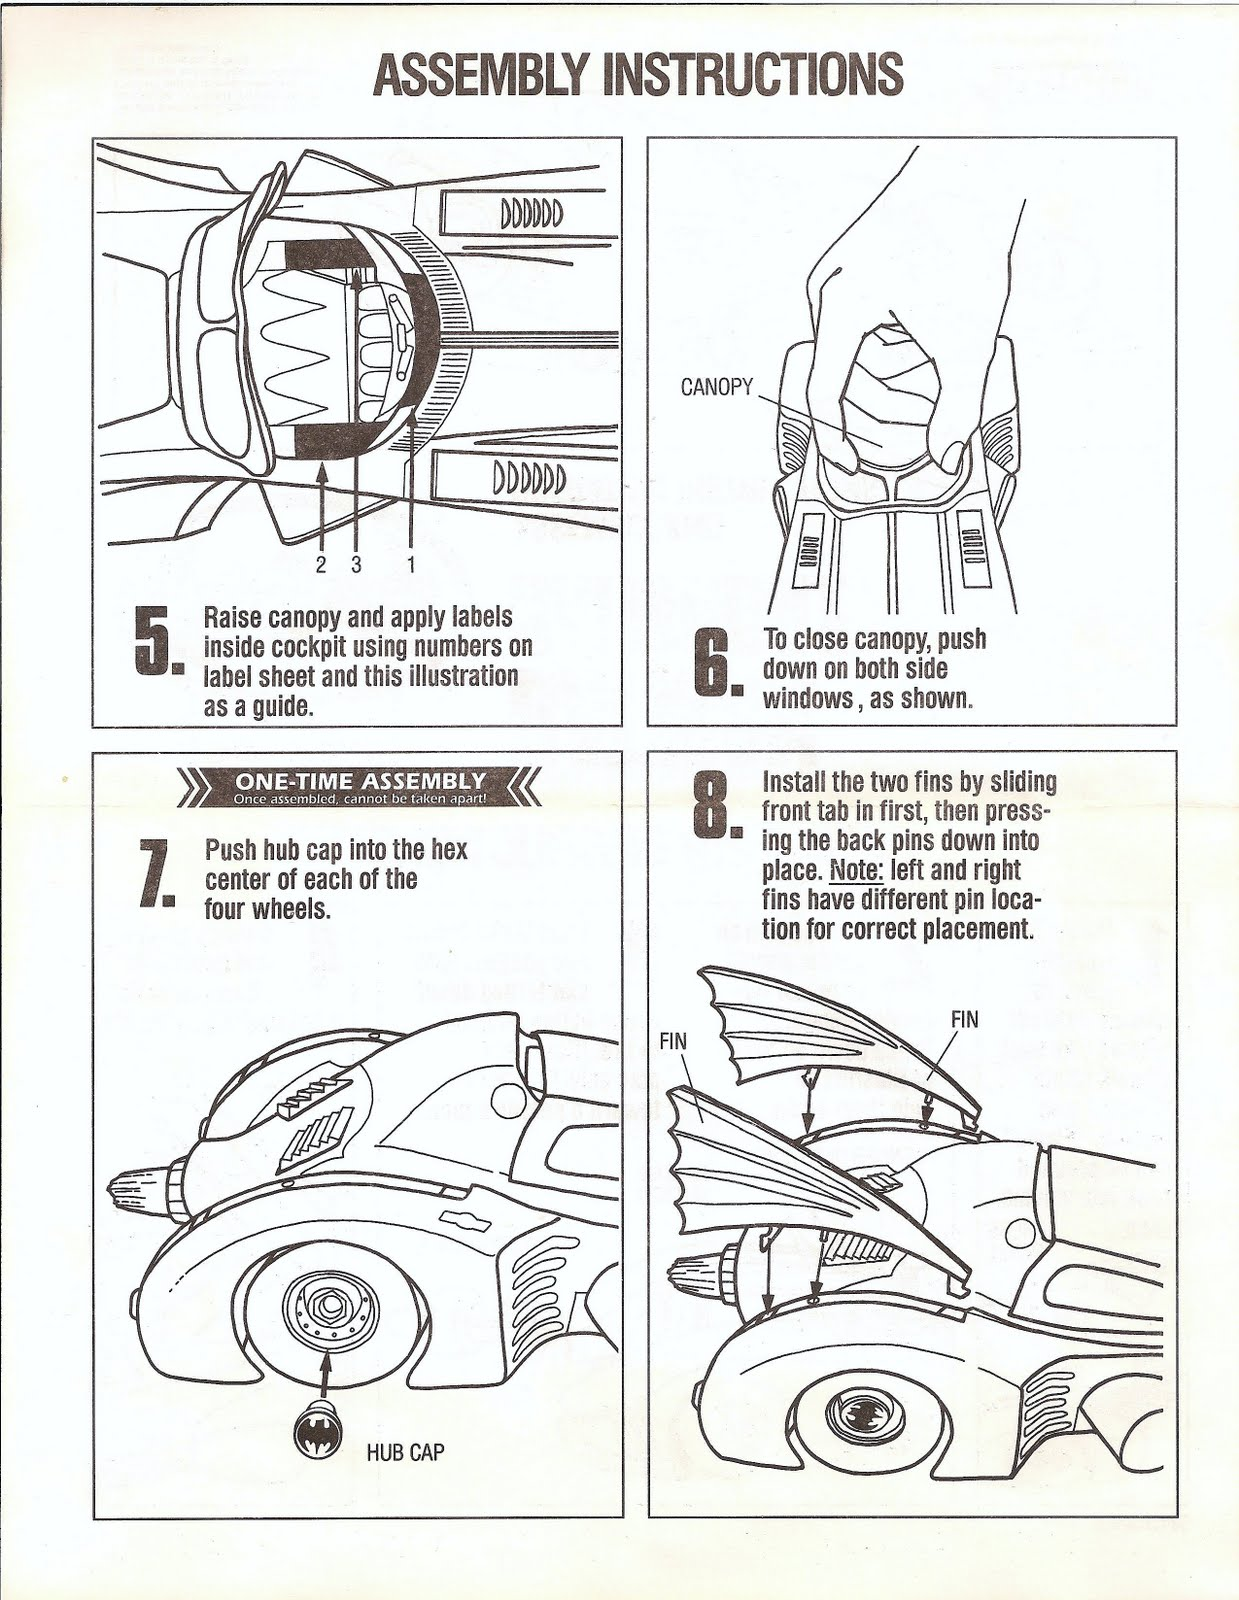 Instructional Manual Images All Instruction Examples